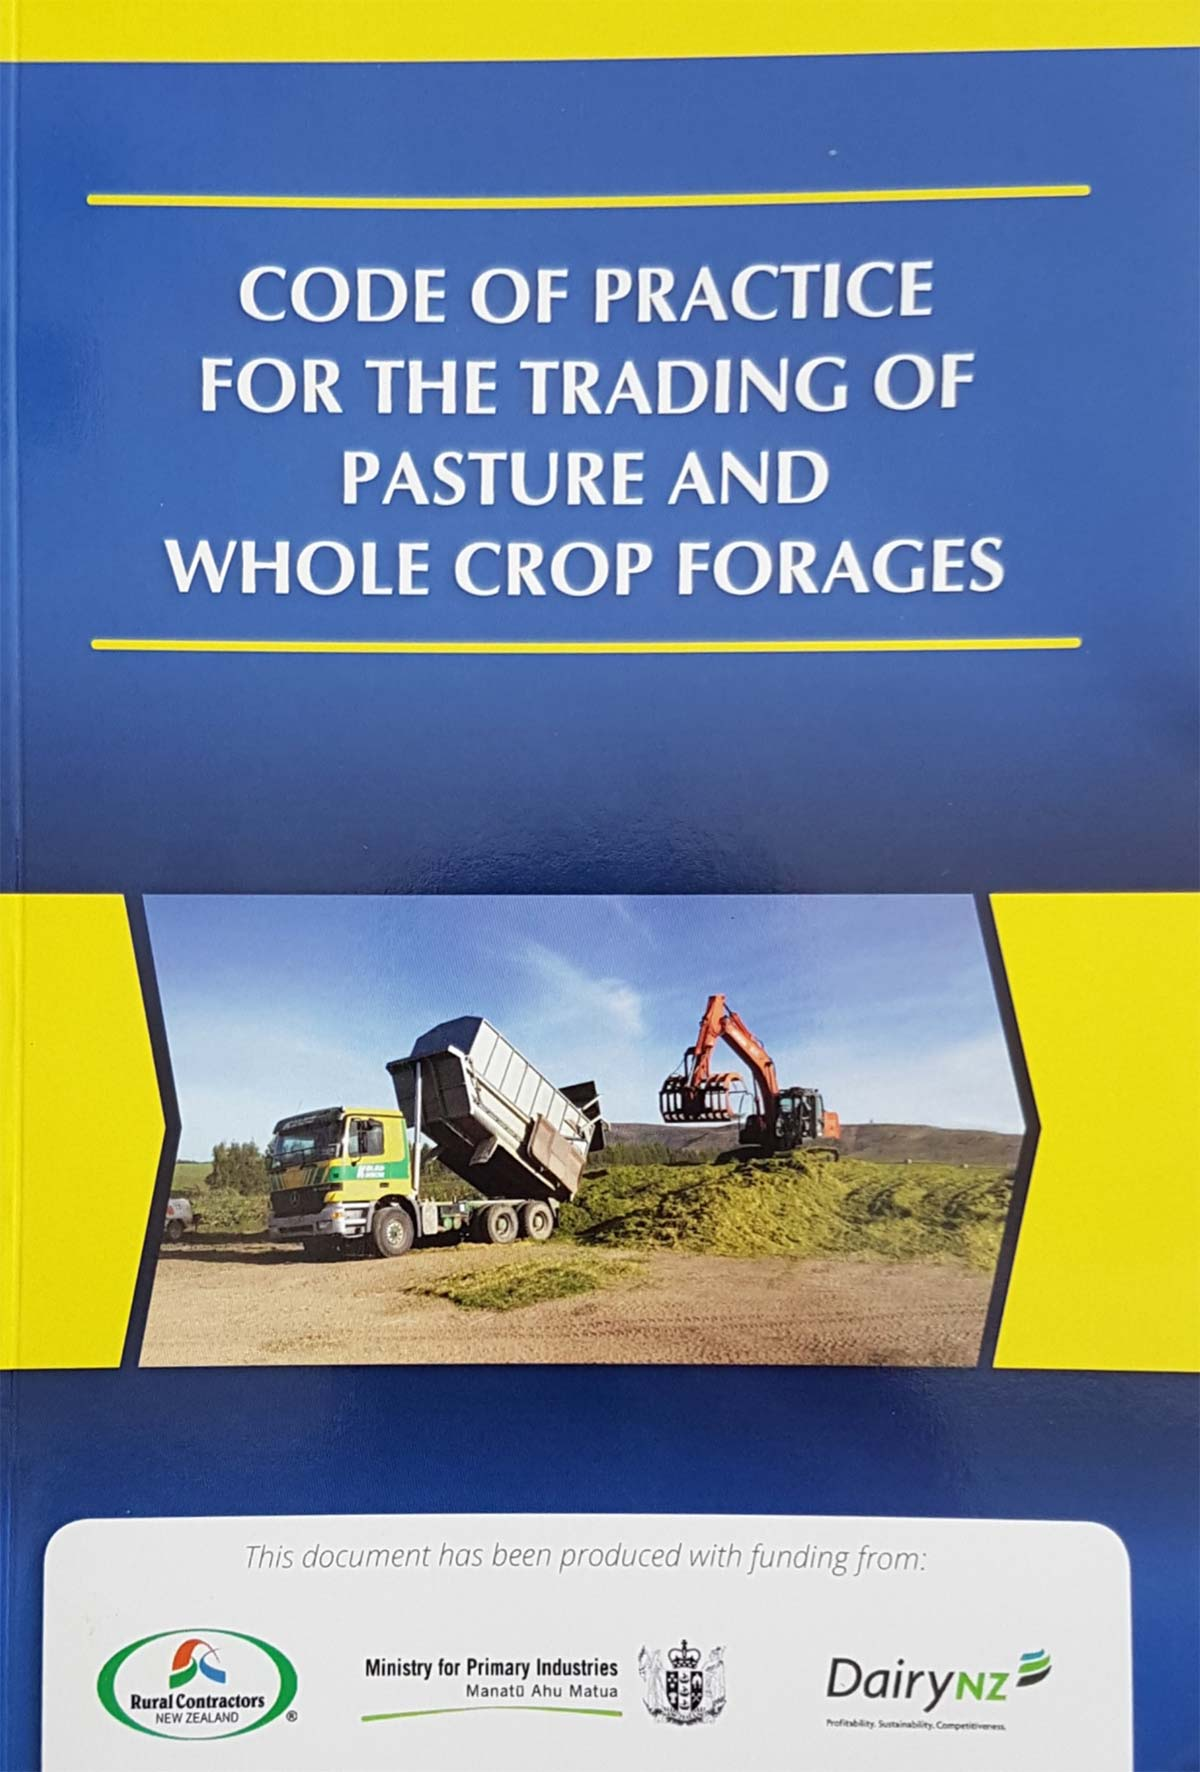 CODE OF PRACTICE FOR THE TRADING OF PASTURE AND WHOLE CROP FORAGES